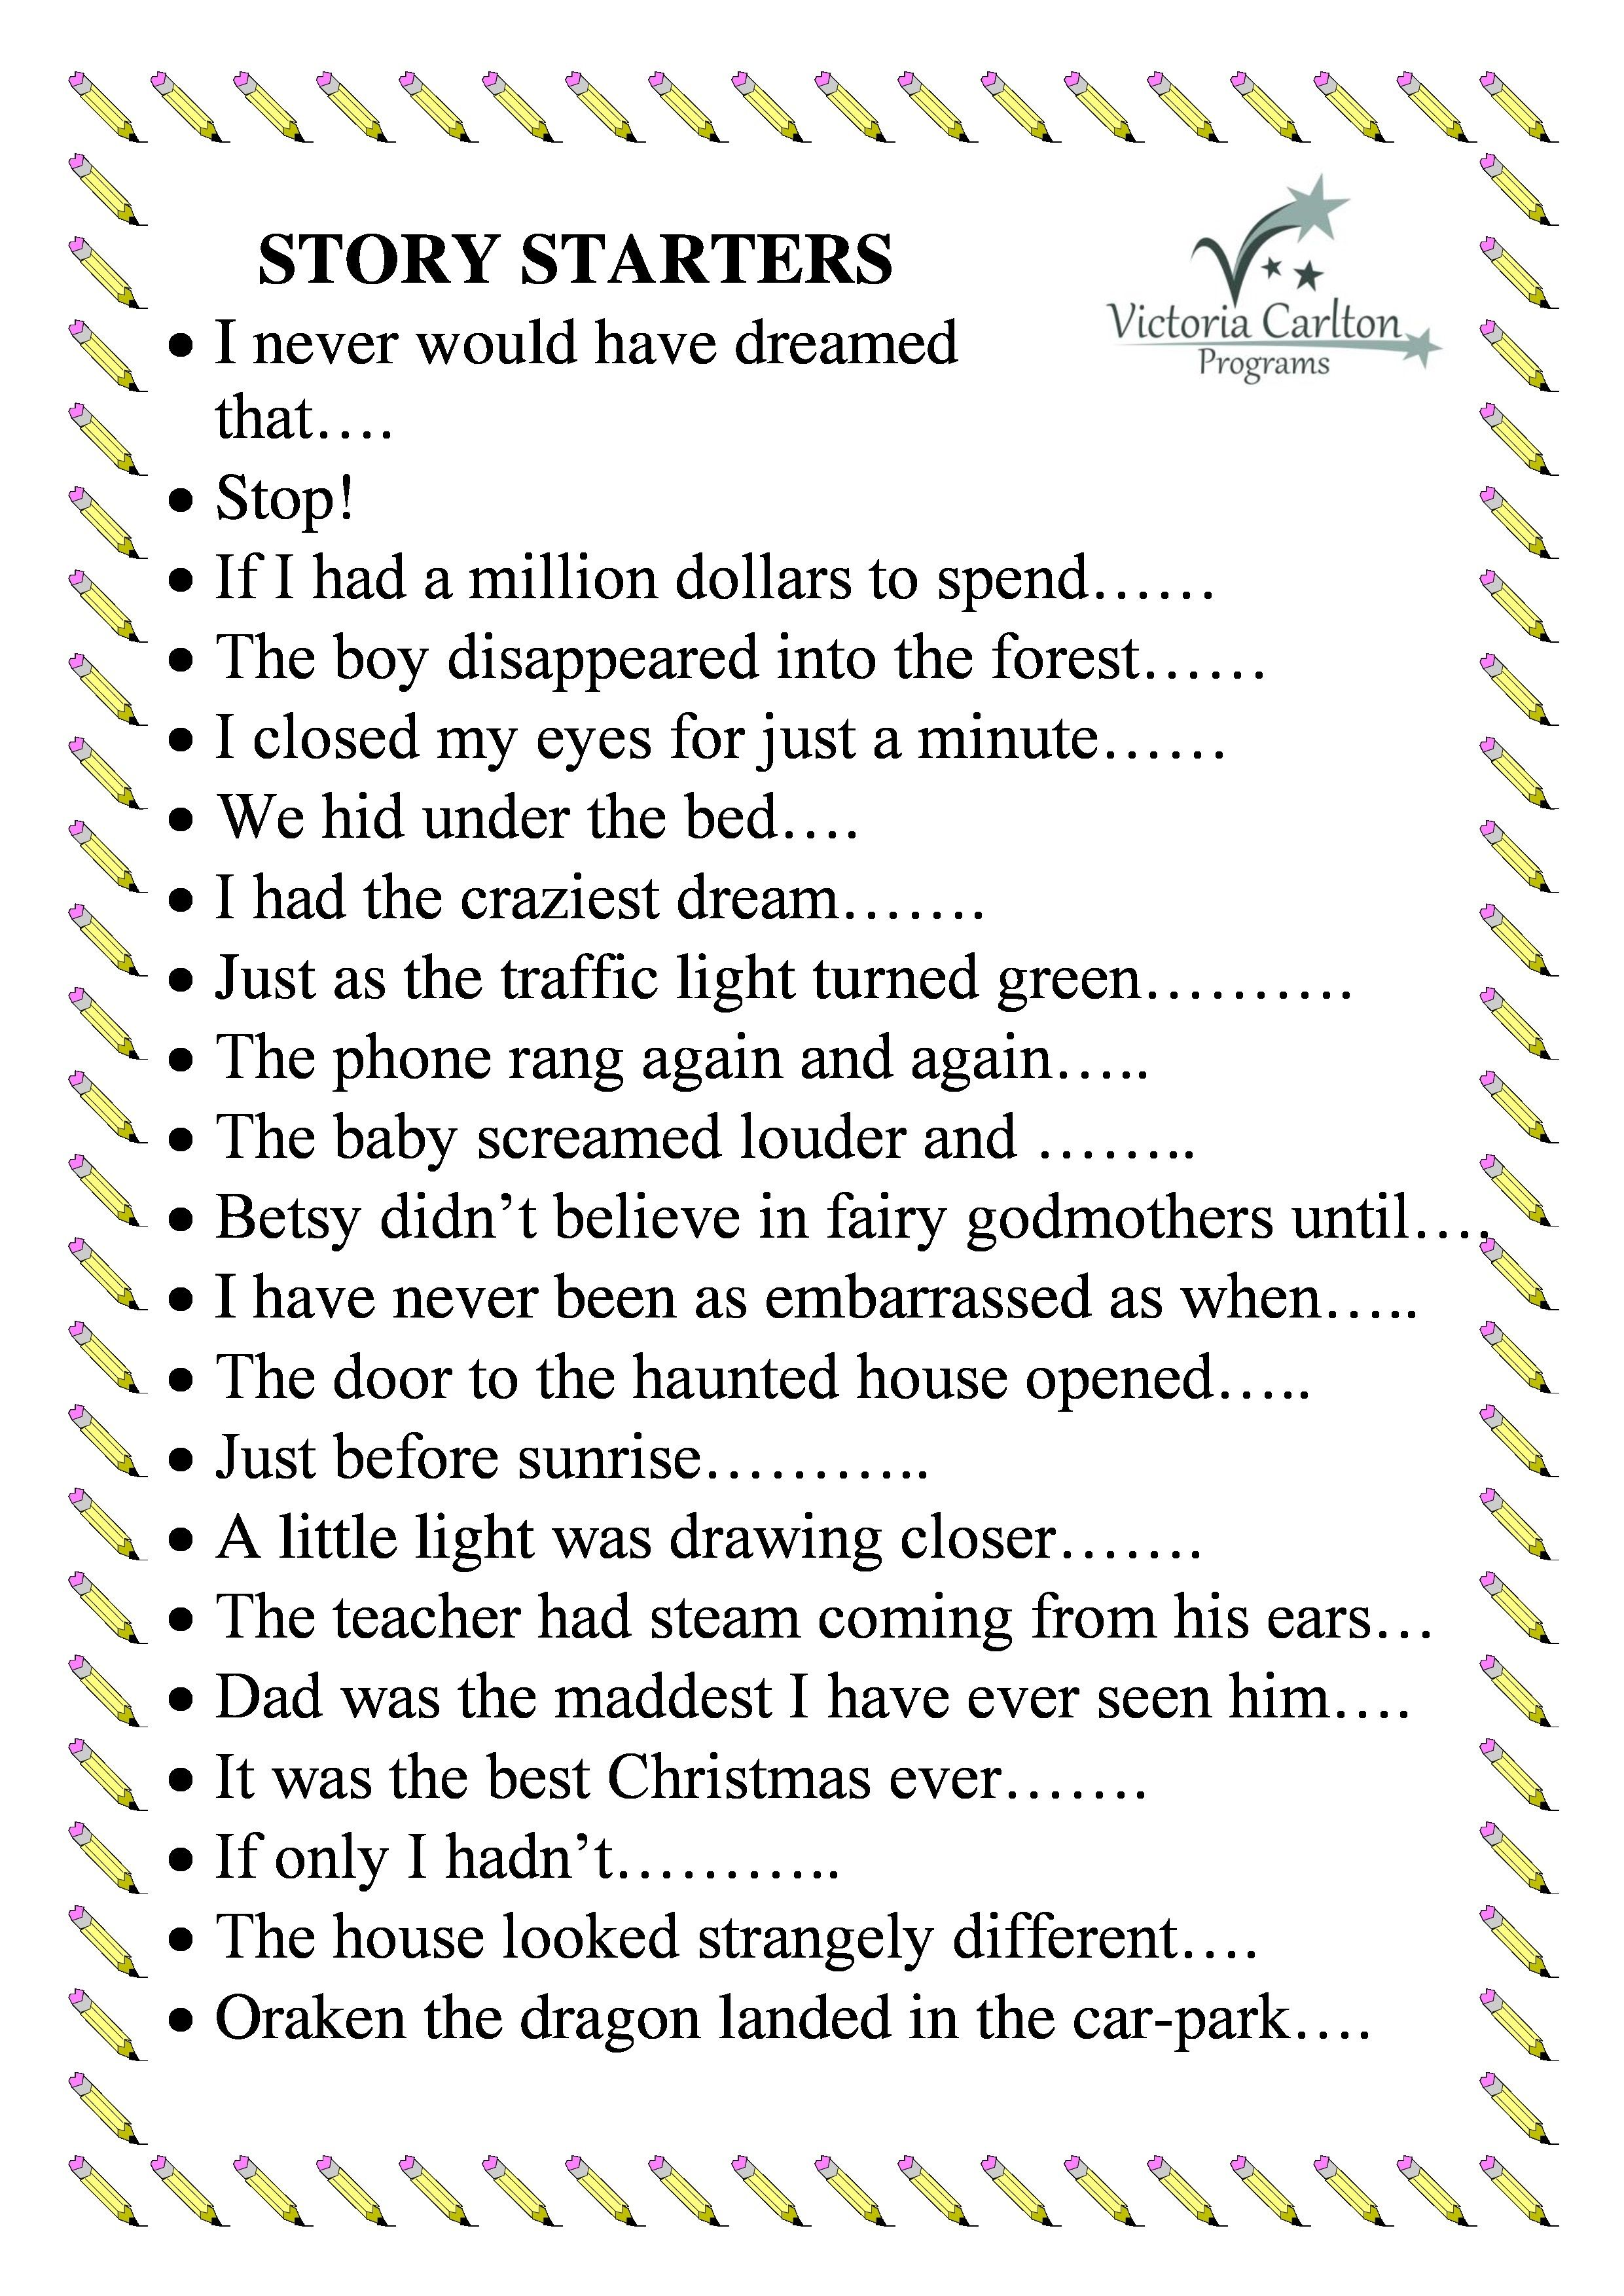 Image Result For Story Starters For Kids  Creative Writing  Image Result For Story Starters For Kids Presentation Skills Effective  Presentation Essay Writing